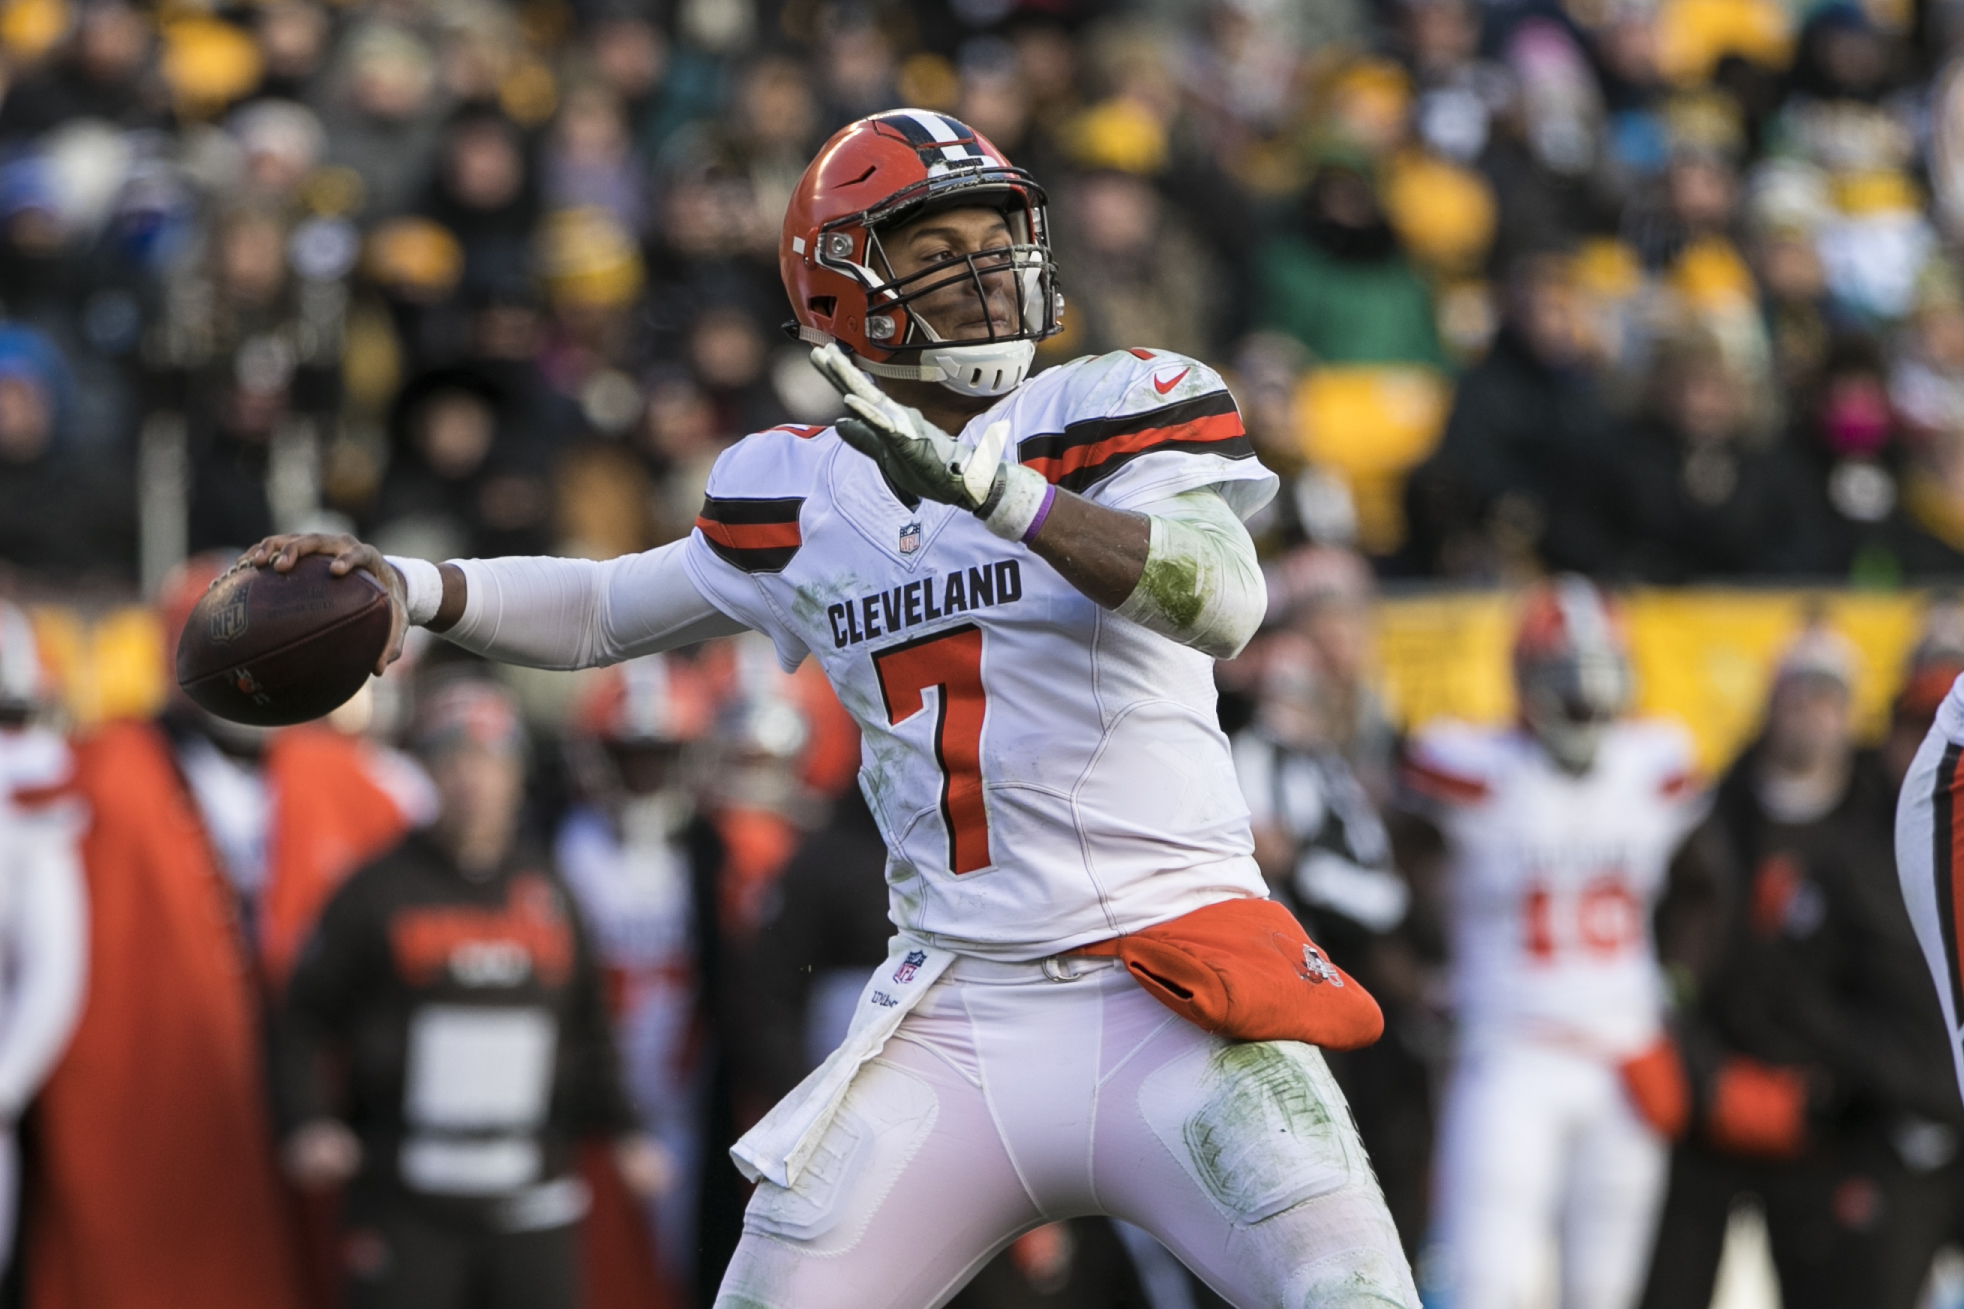 NFL: DEC 31 Browns at Steelers